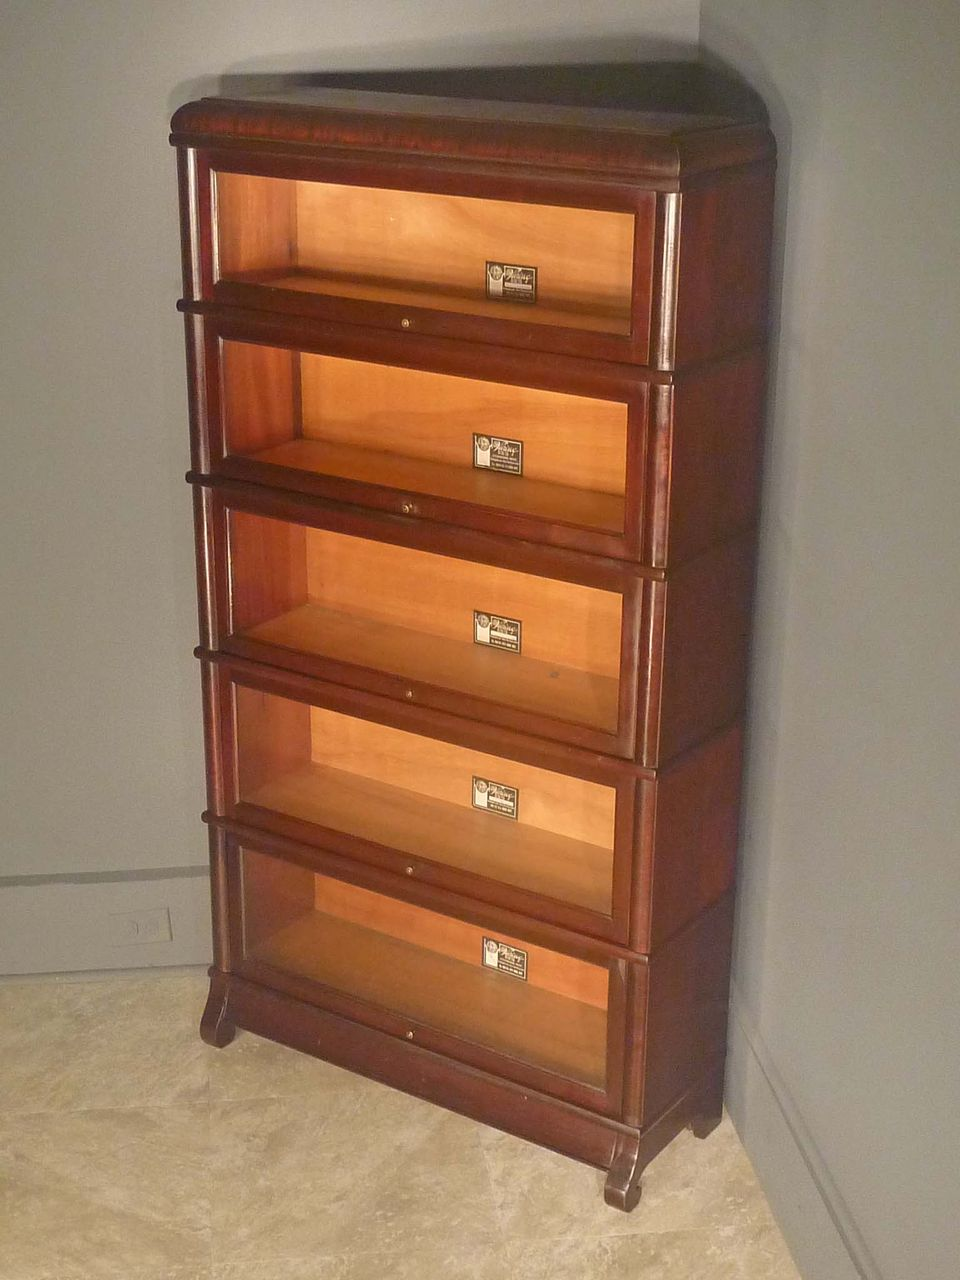 legal bookcase